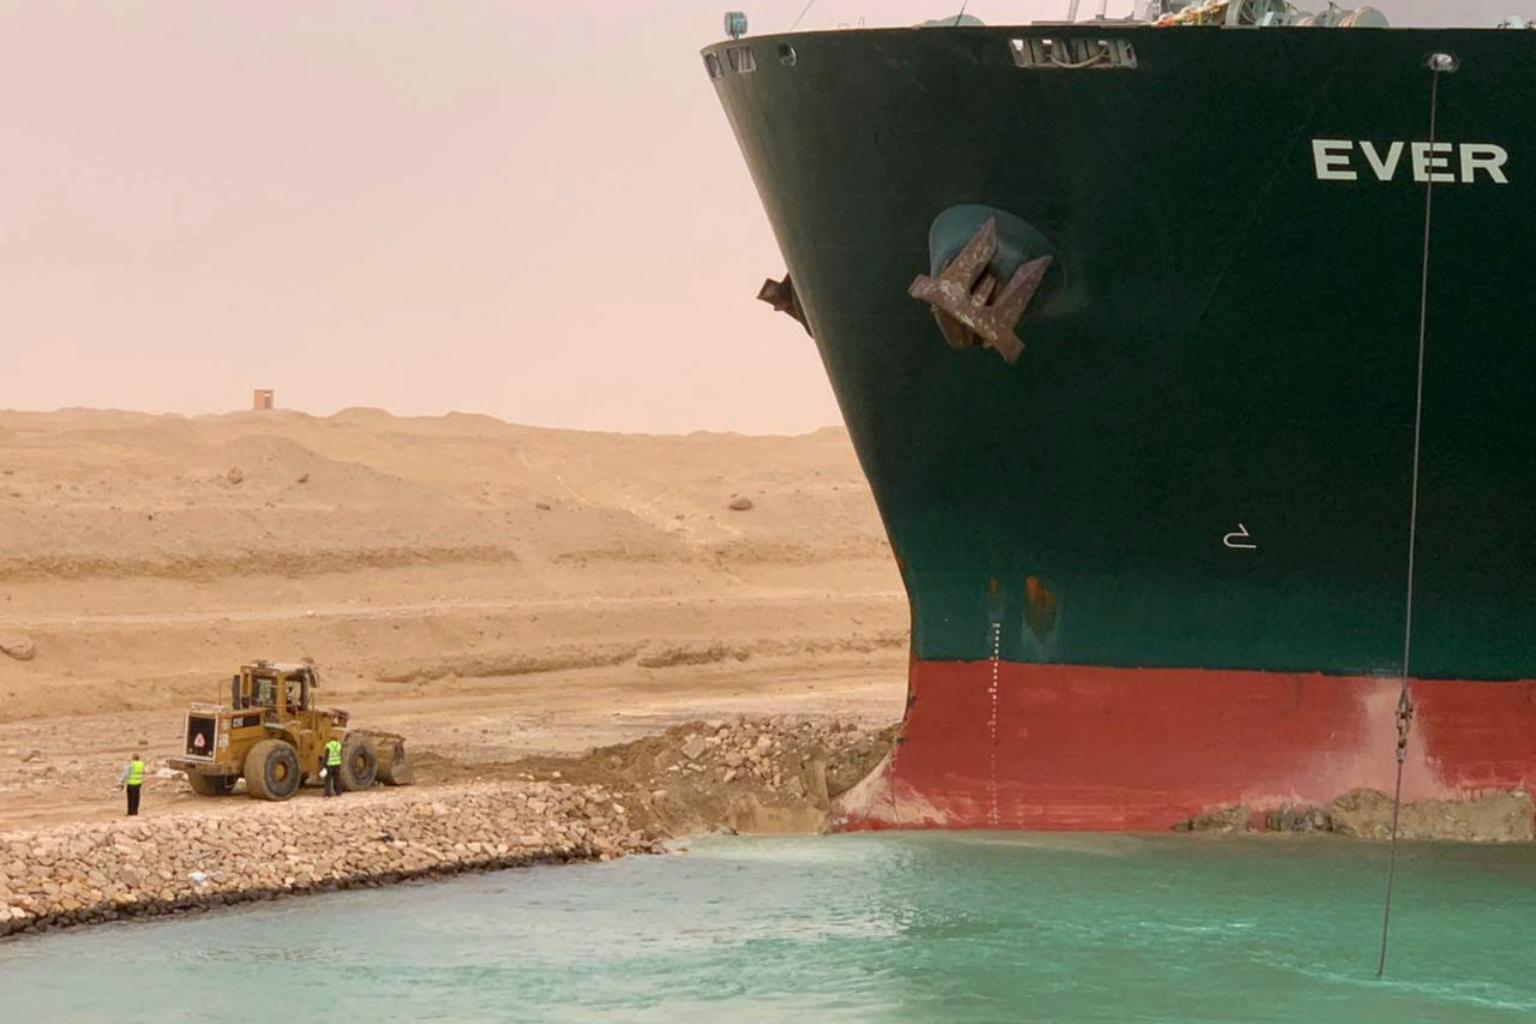 Suez blockage puts spotlight on mega ships and the problems they pose